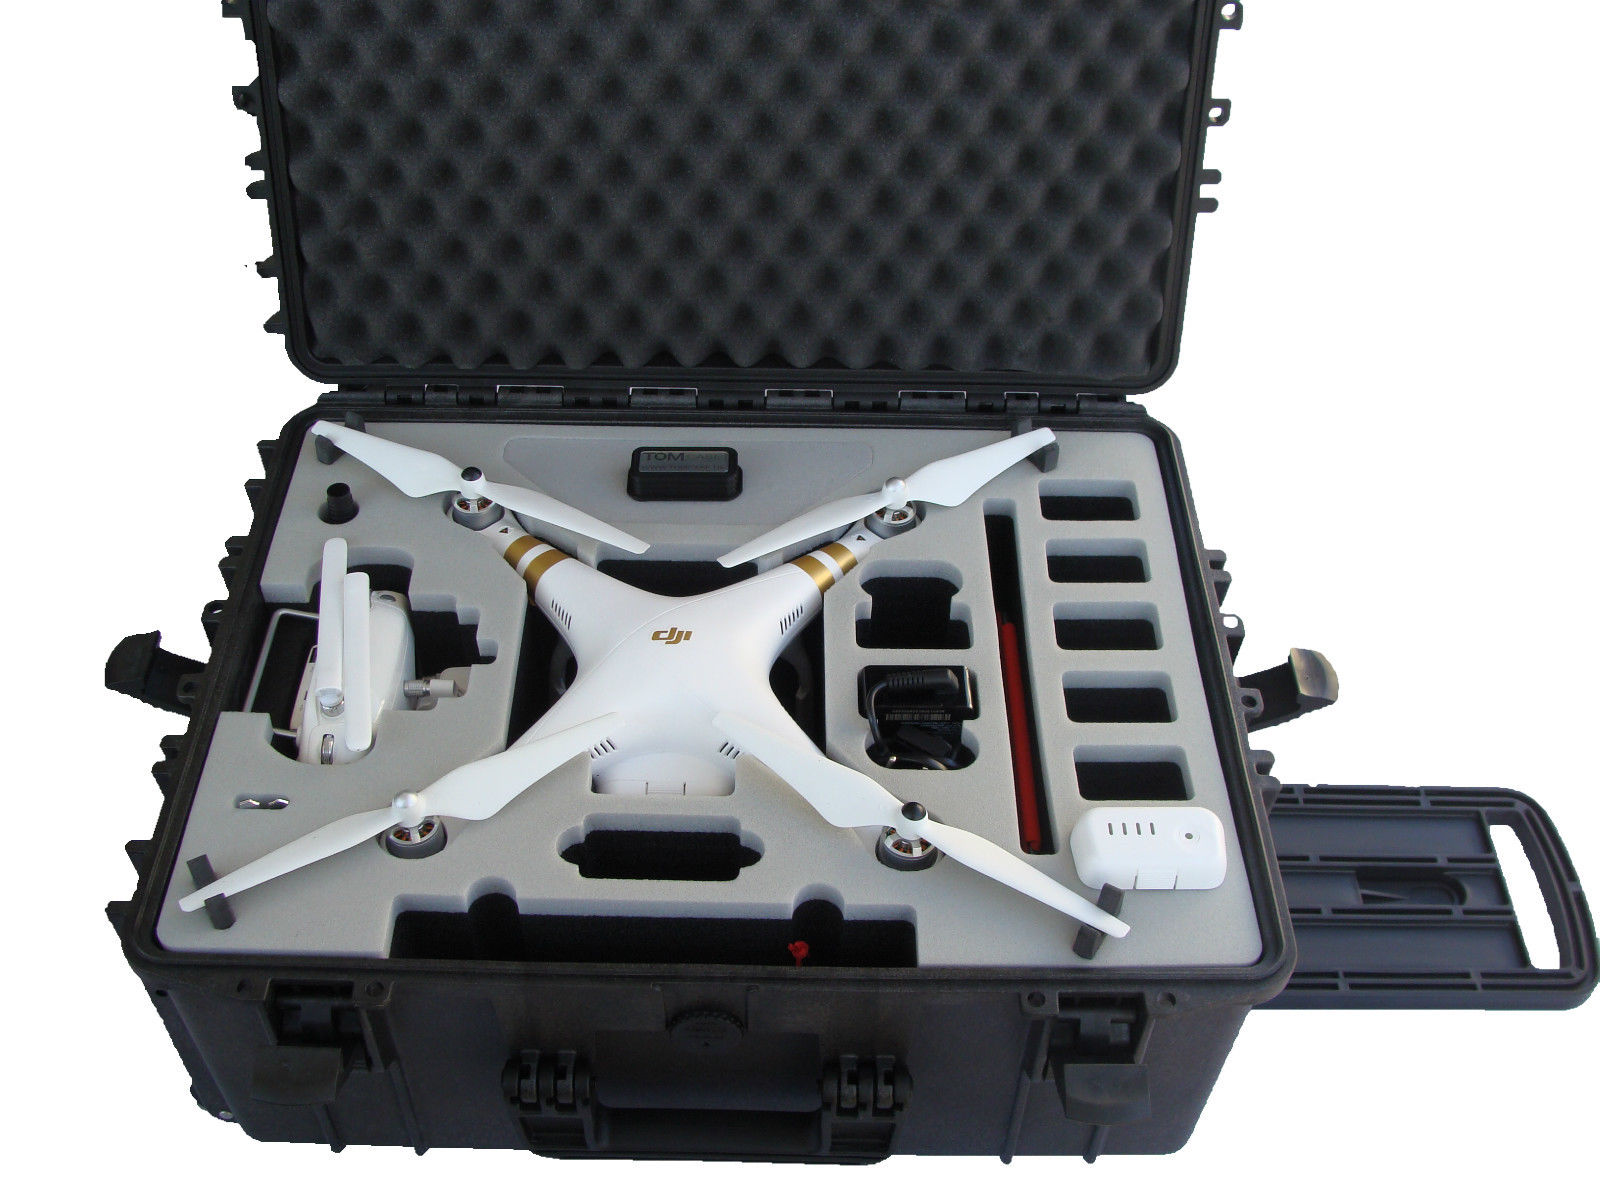 transportkoffer trolley dji phantom3 multicopter inkl gopro. Black Bedroom Furniture Sets. Home Design Ideas